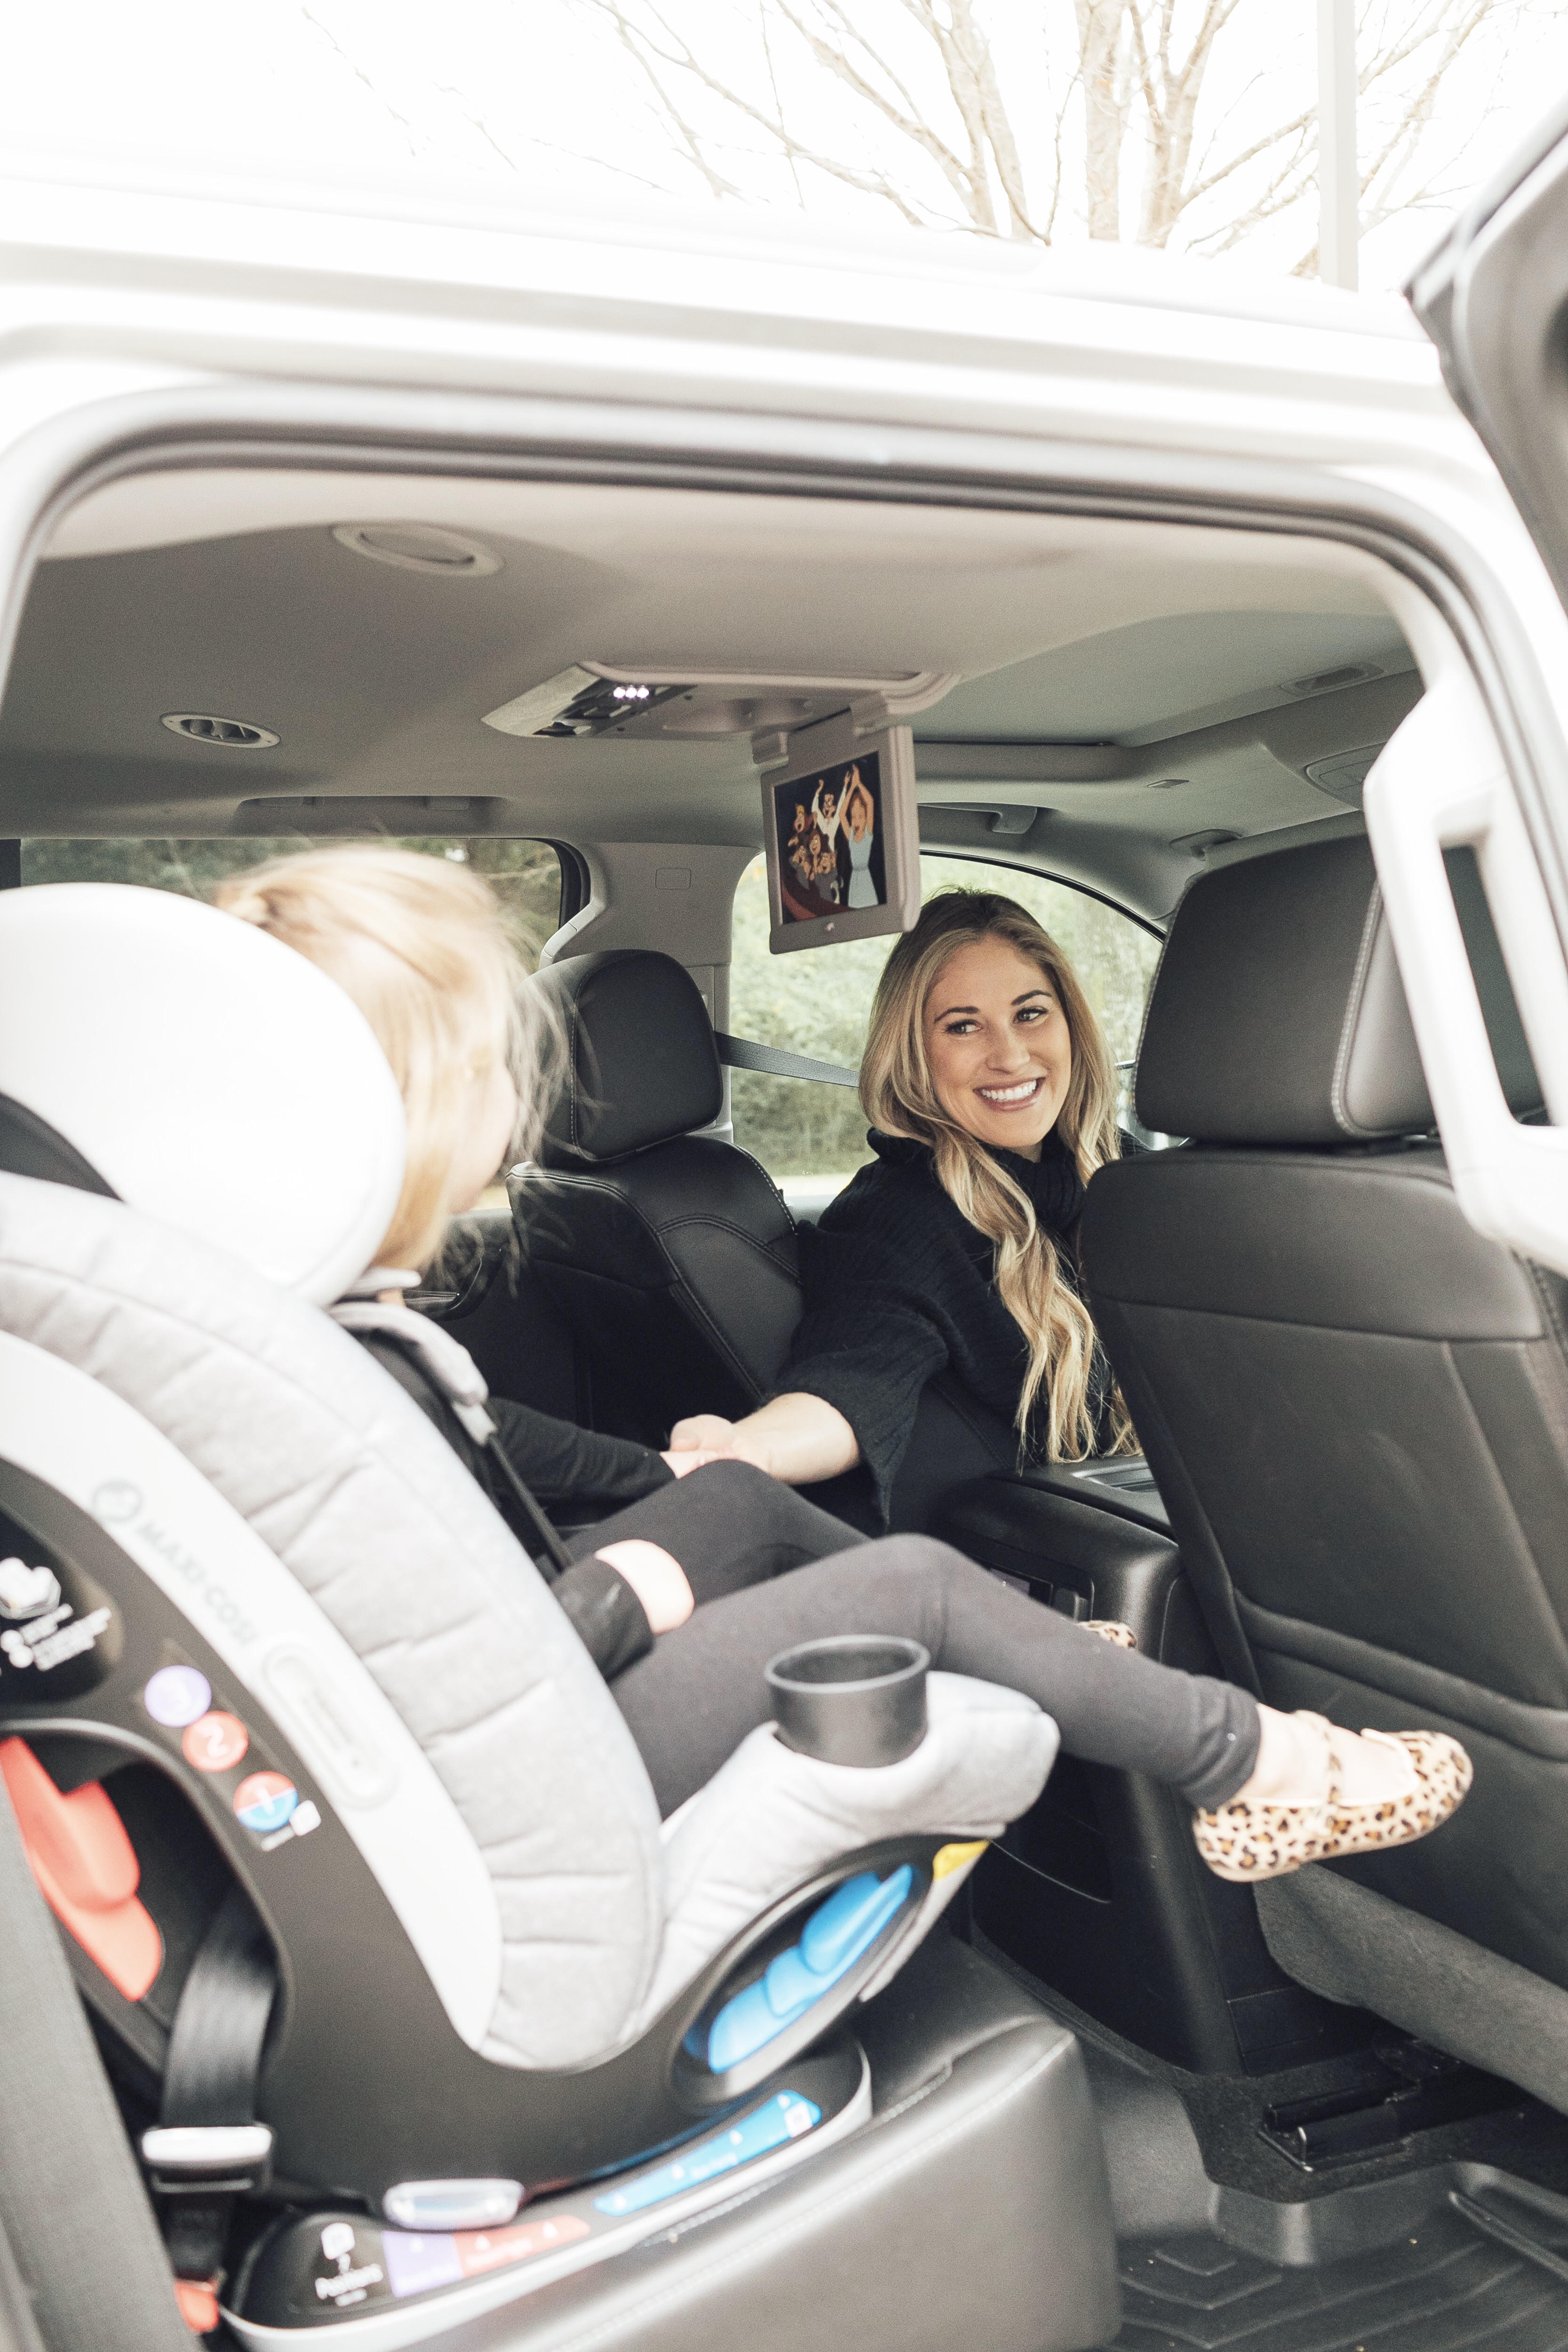 Top US lifestyle blog, Walking in Memphis in High Heels, features some Fun Ideas for Long Road Trips to entertain your children: image of a toddler in her Maxi Cosi car seat